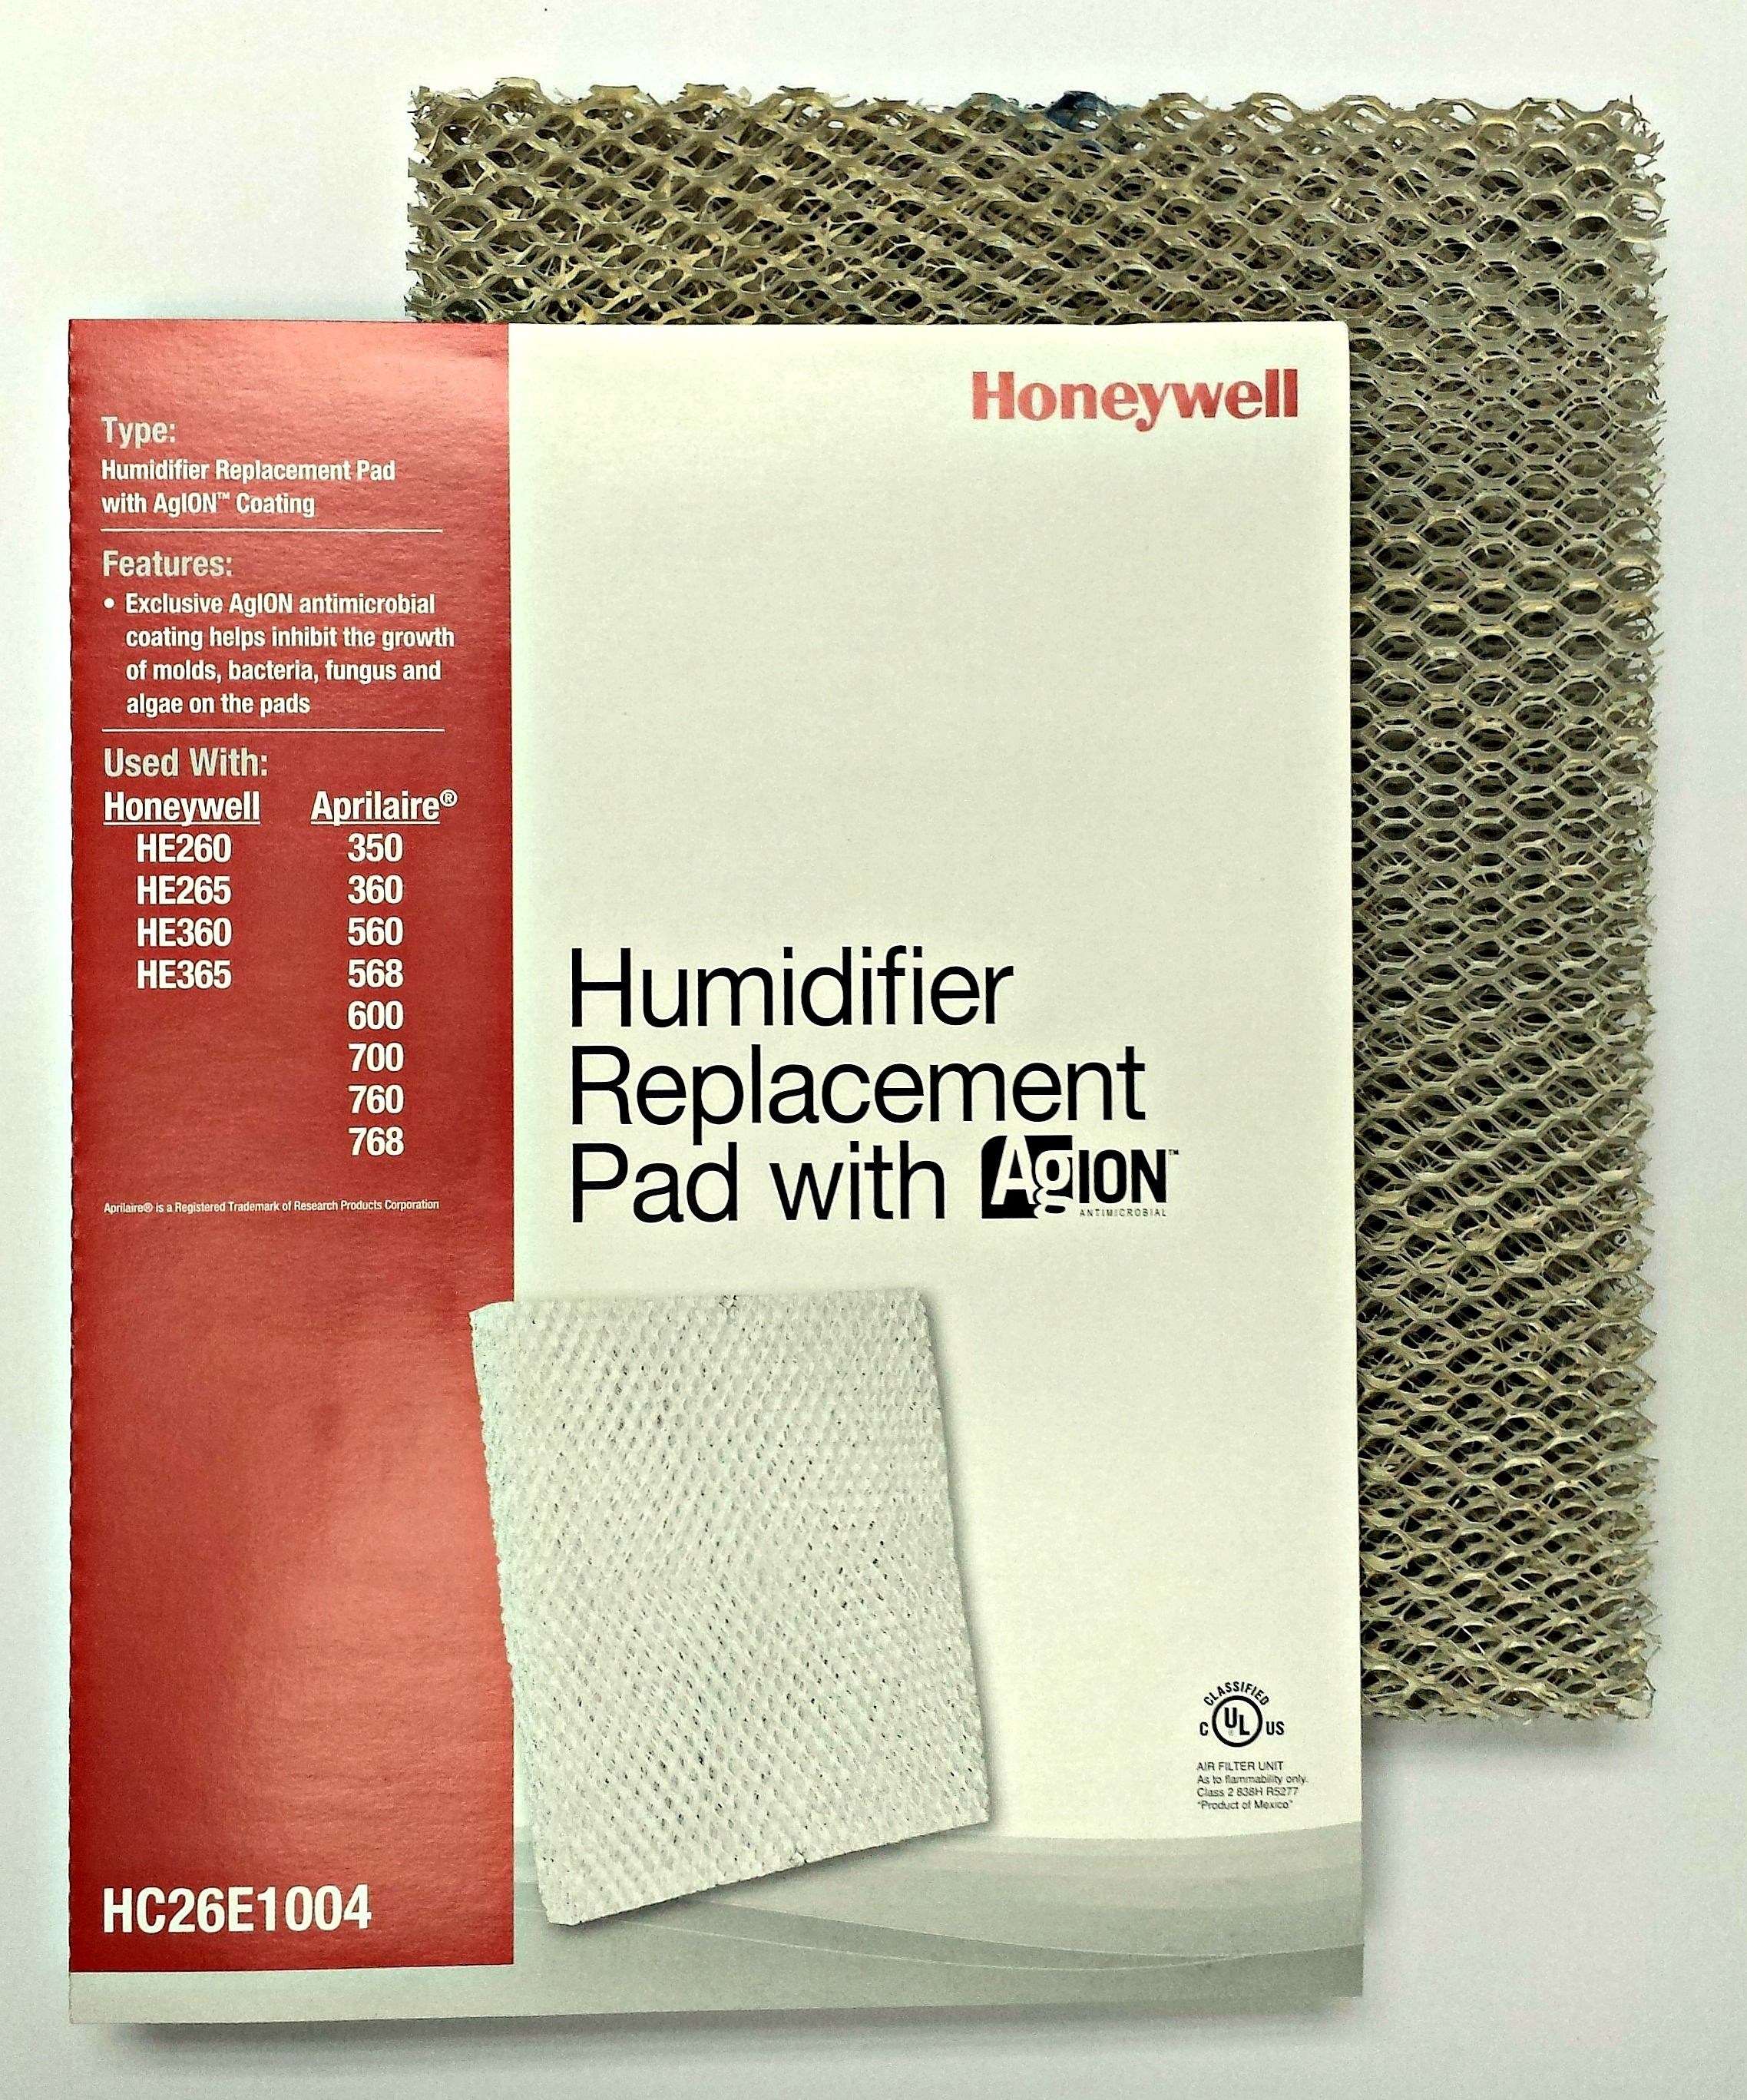 Honeywell HC26E1004 Humidifier Pad. Humidifier